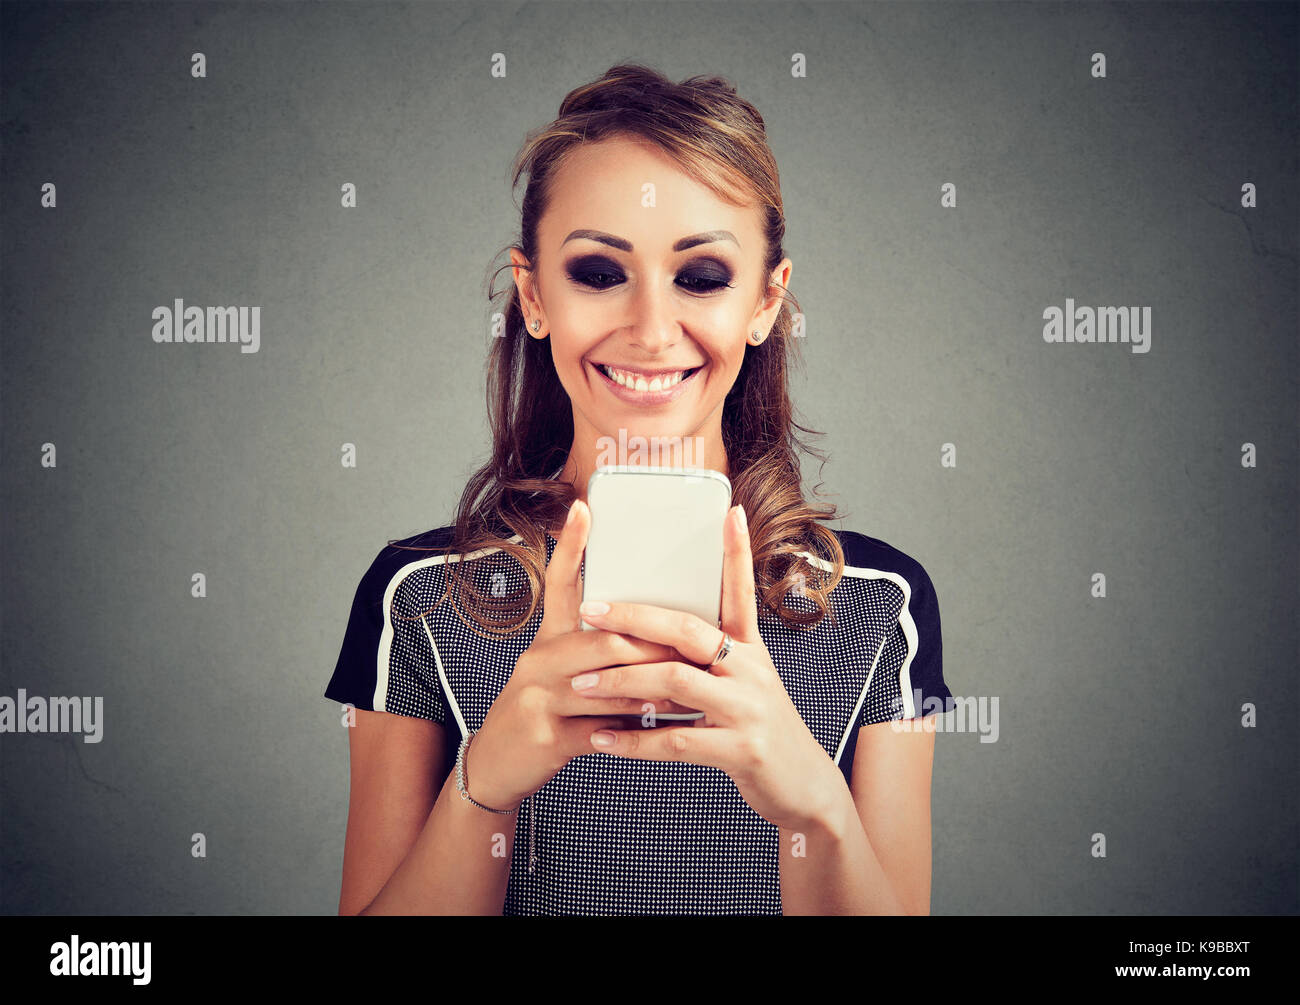 Young smiling woman using a mobile phone - Stock Image